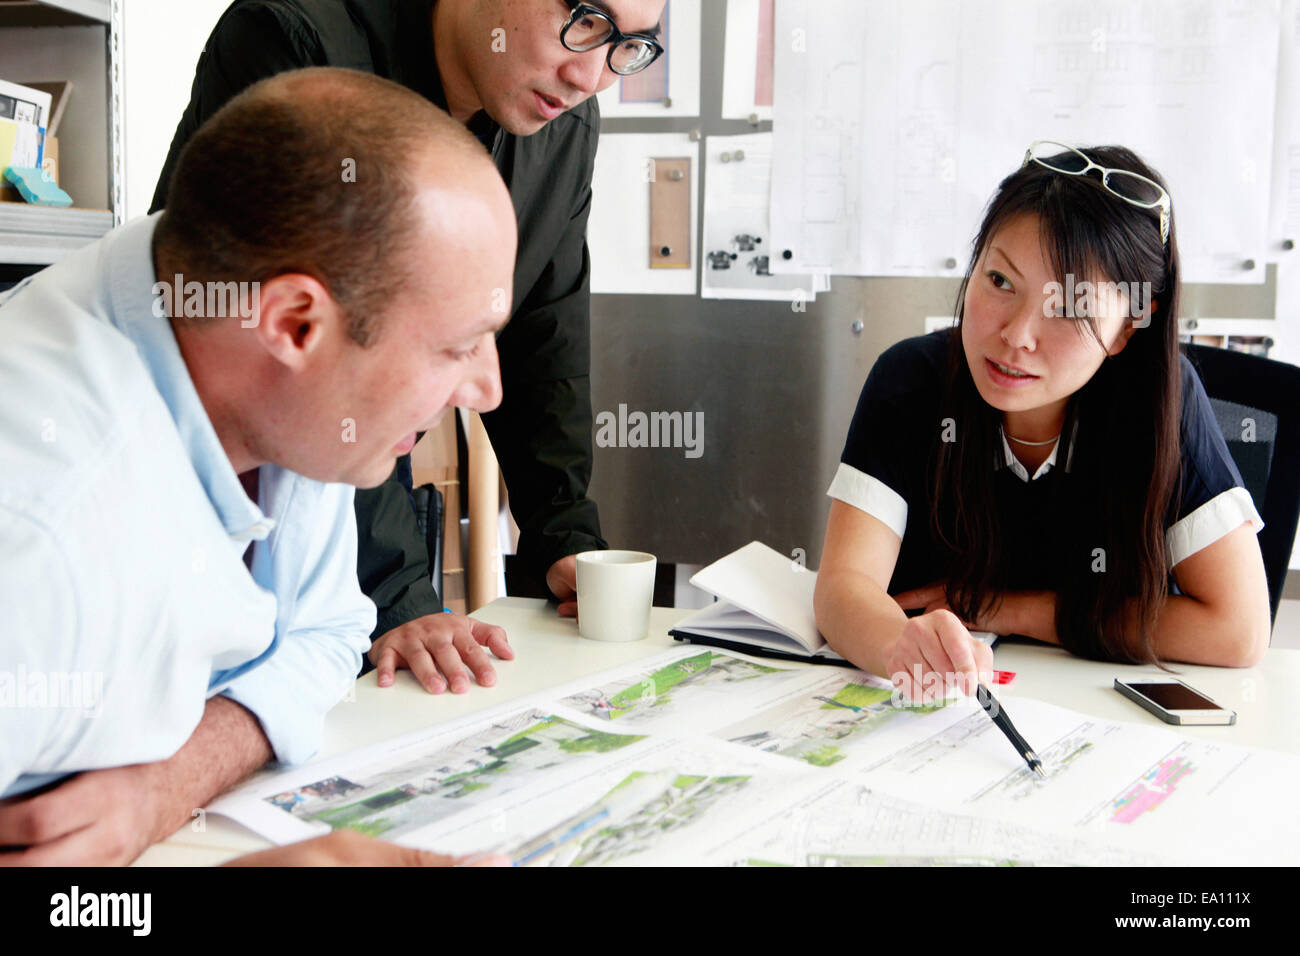 Team of three architects discussing ideas for blueprint in office - Stock Image